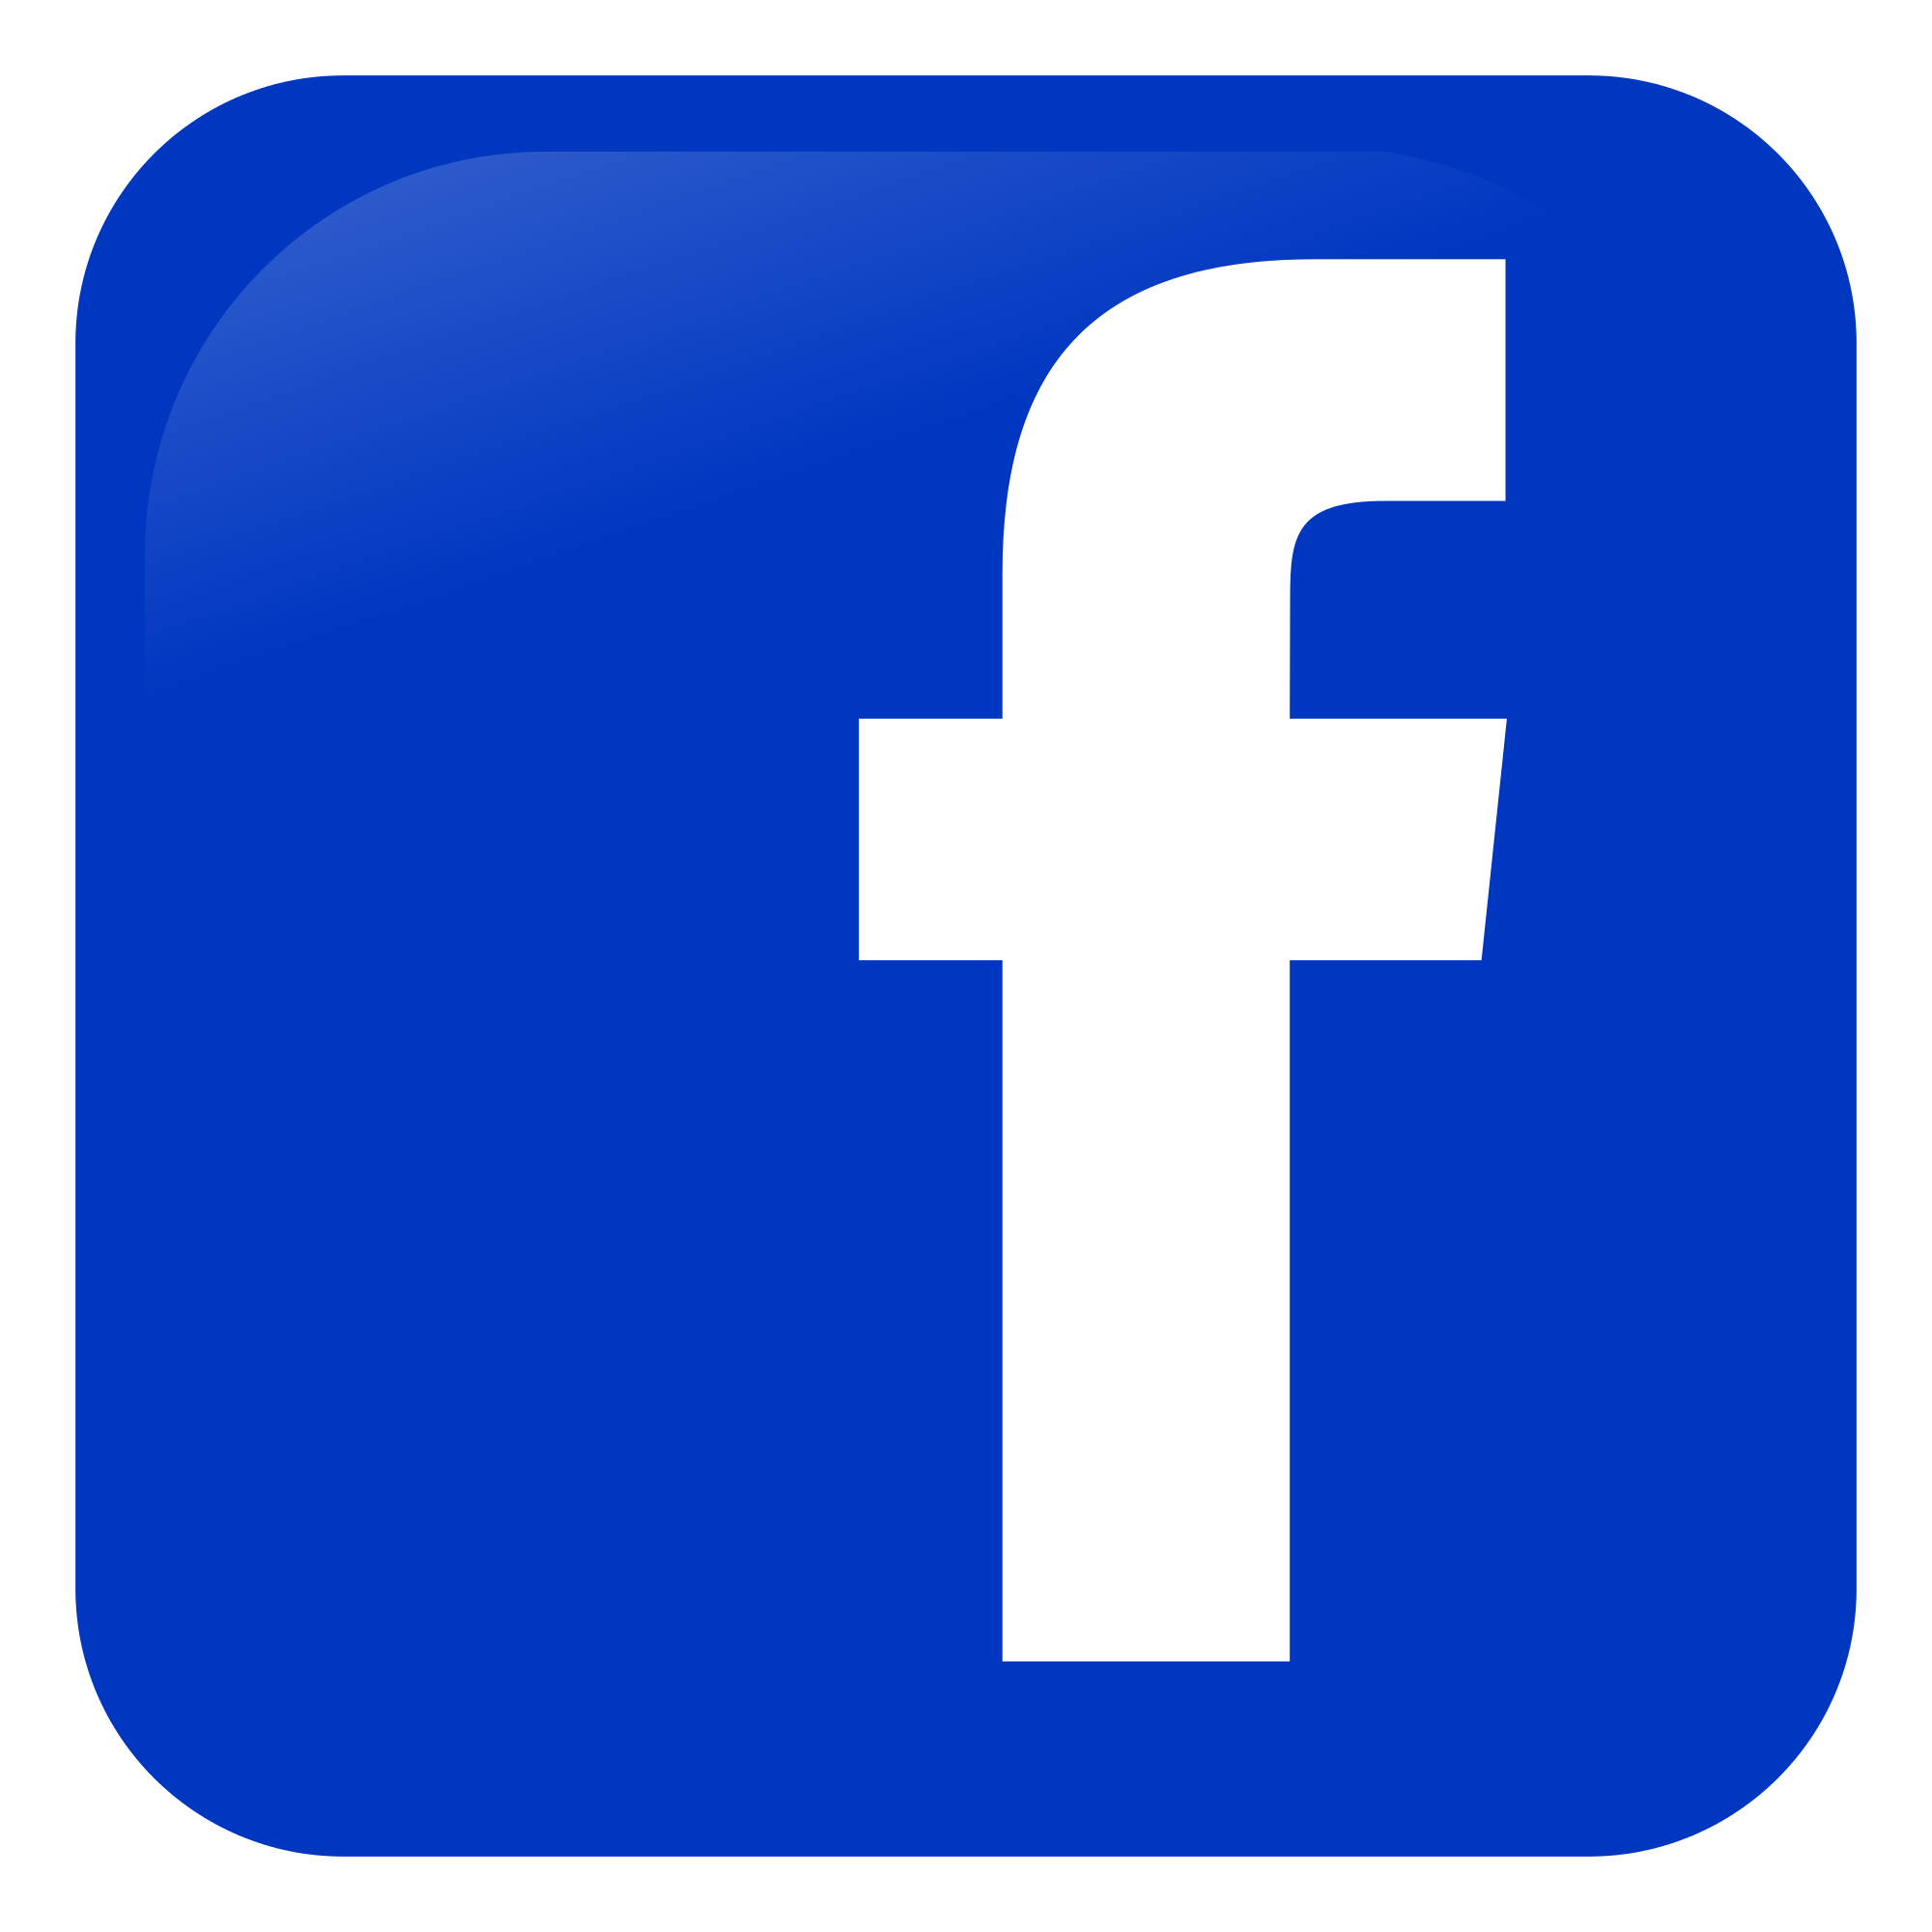 facebook_icon-svg